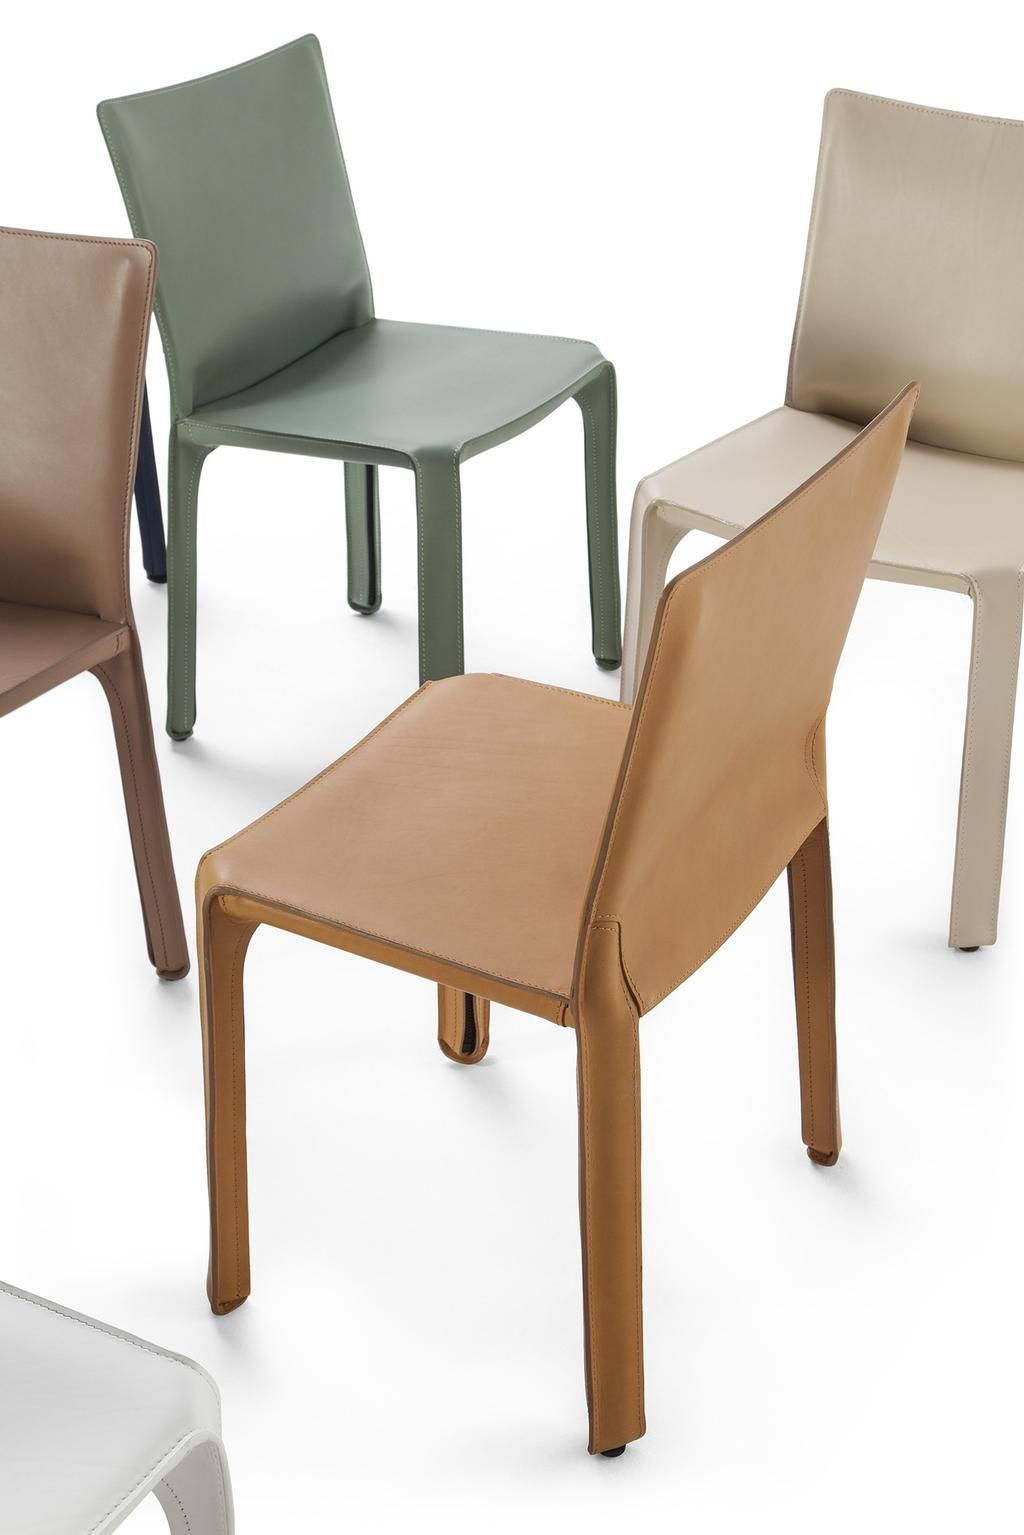 Tremendous 16 New Saddle Leather Colours For The Cab Chair By Ibusinesslaw Wood Chair Design Ideas Ibusinesslaworg